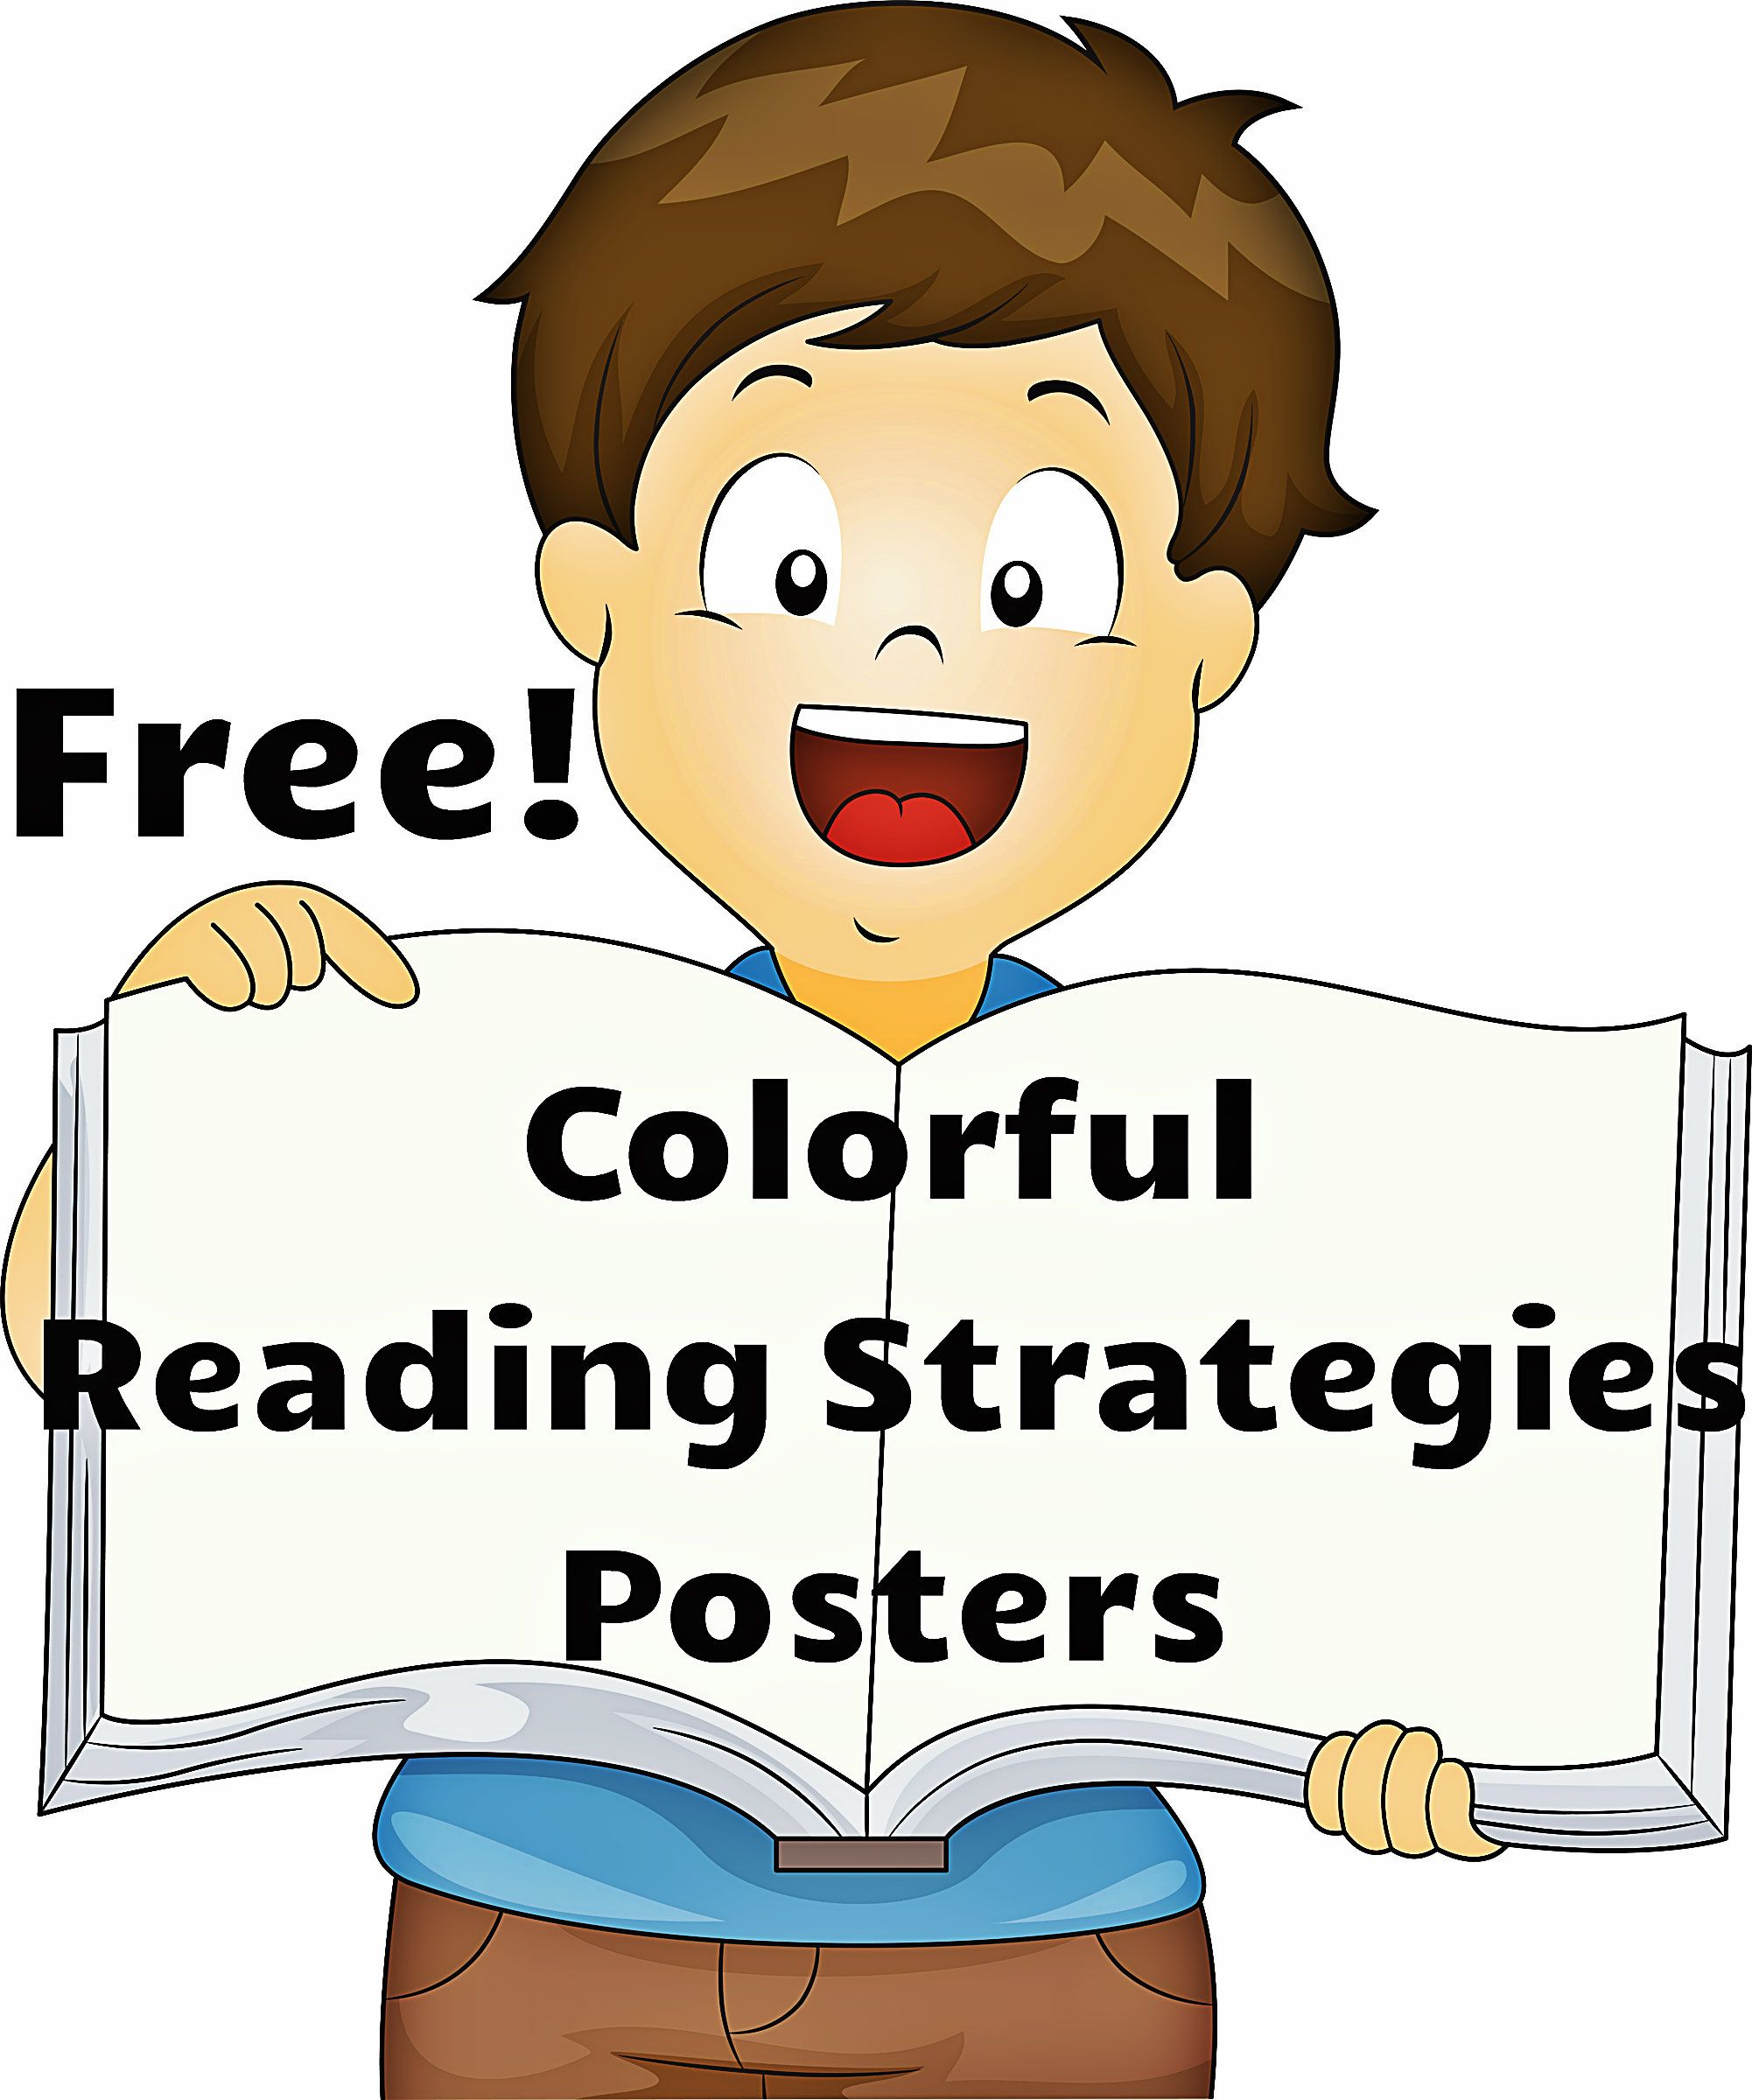 Free Word Strategies Posters To Help With Decoding